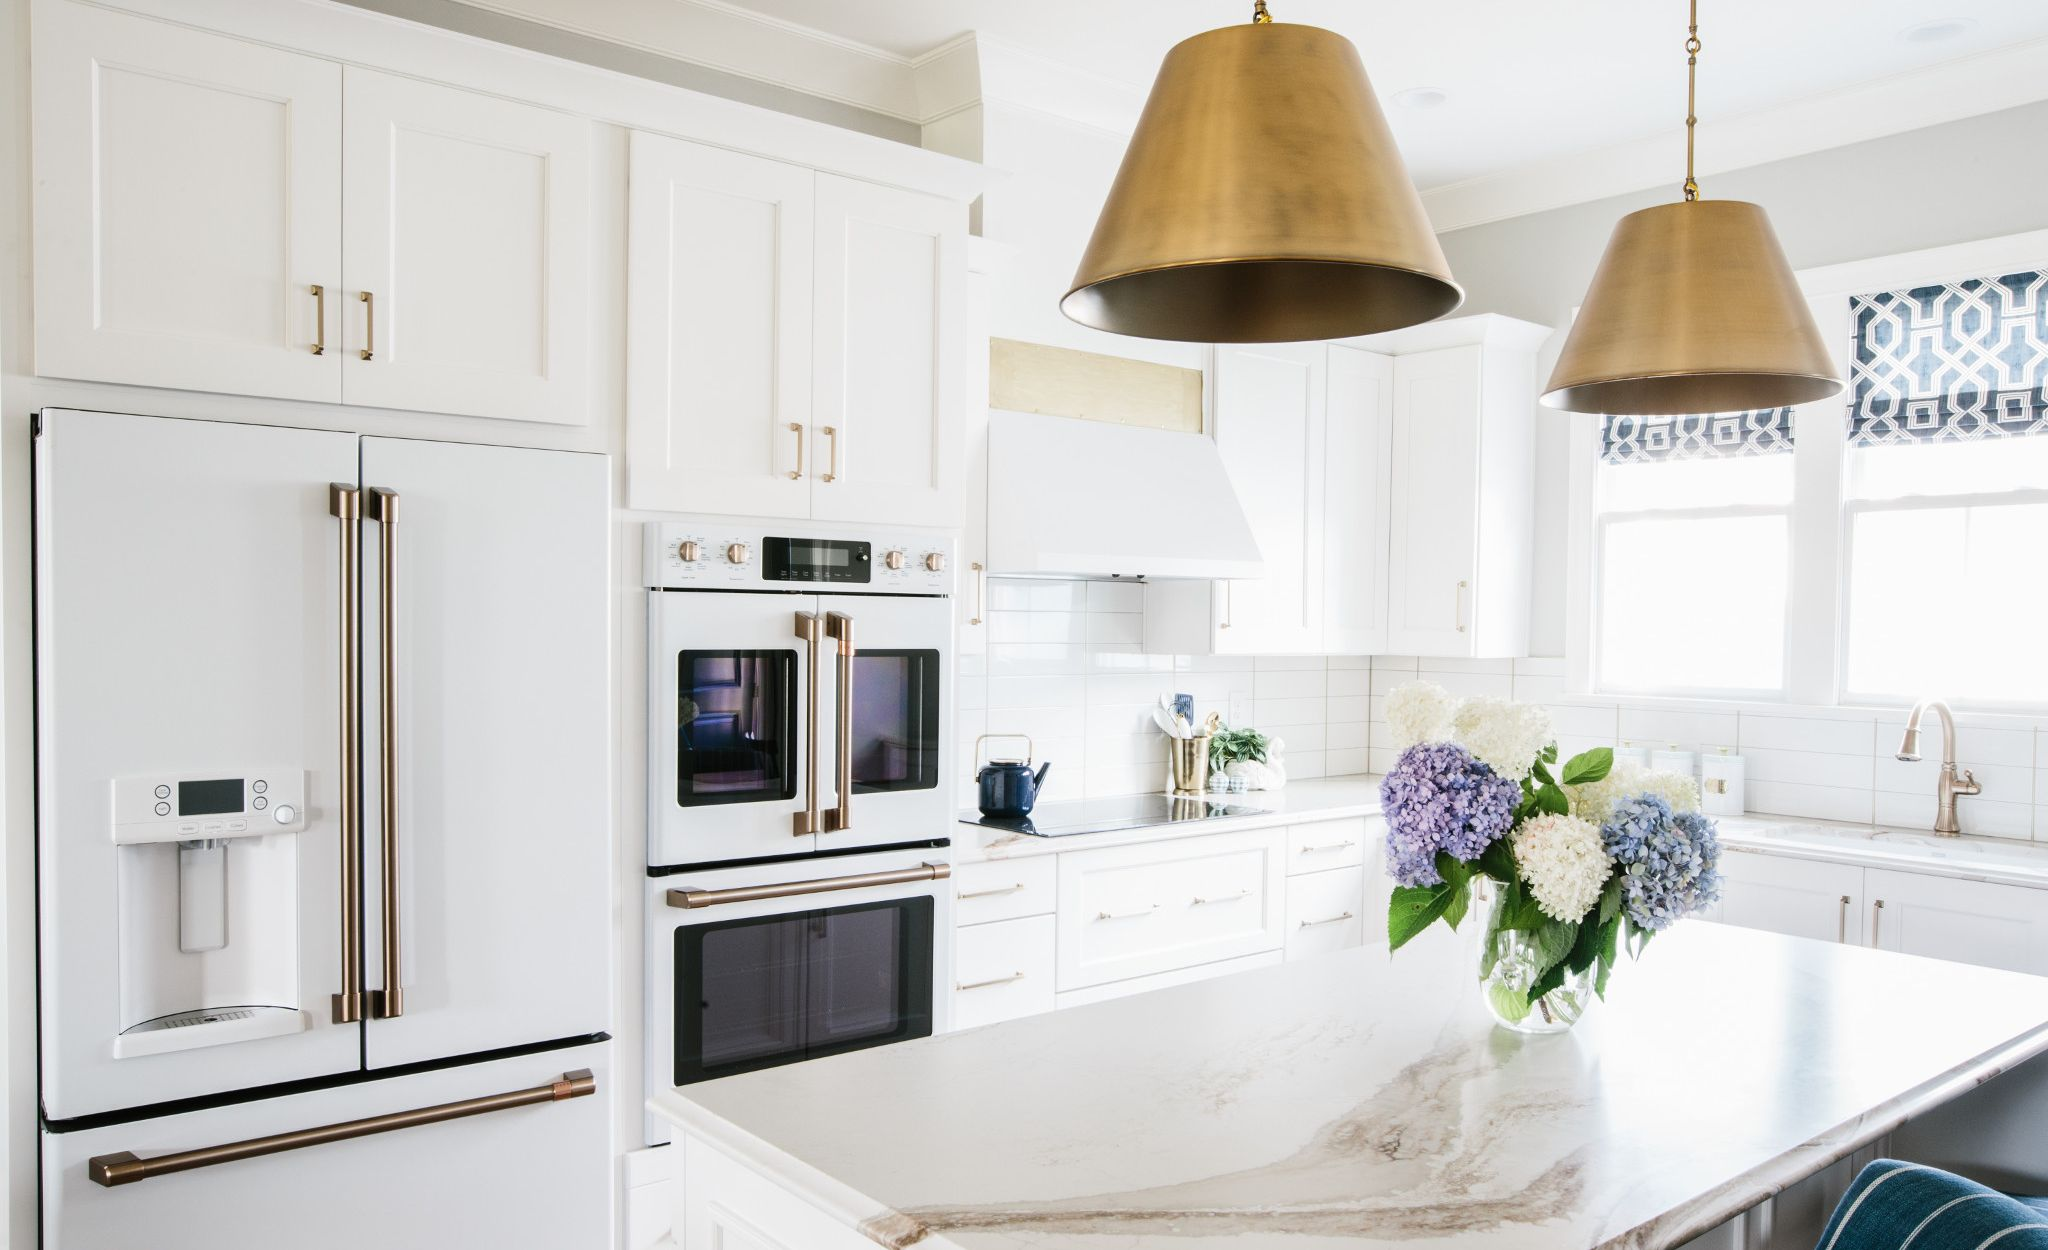 Cambria Brittanicca Gold in a white kitchen with coordinating white appliances and gold pendant lighting.